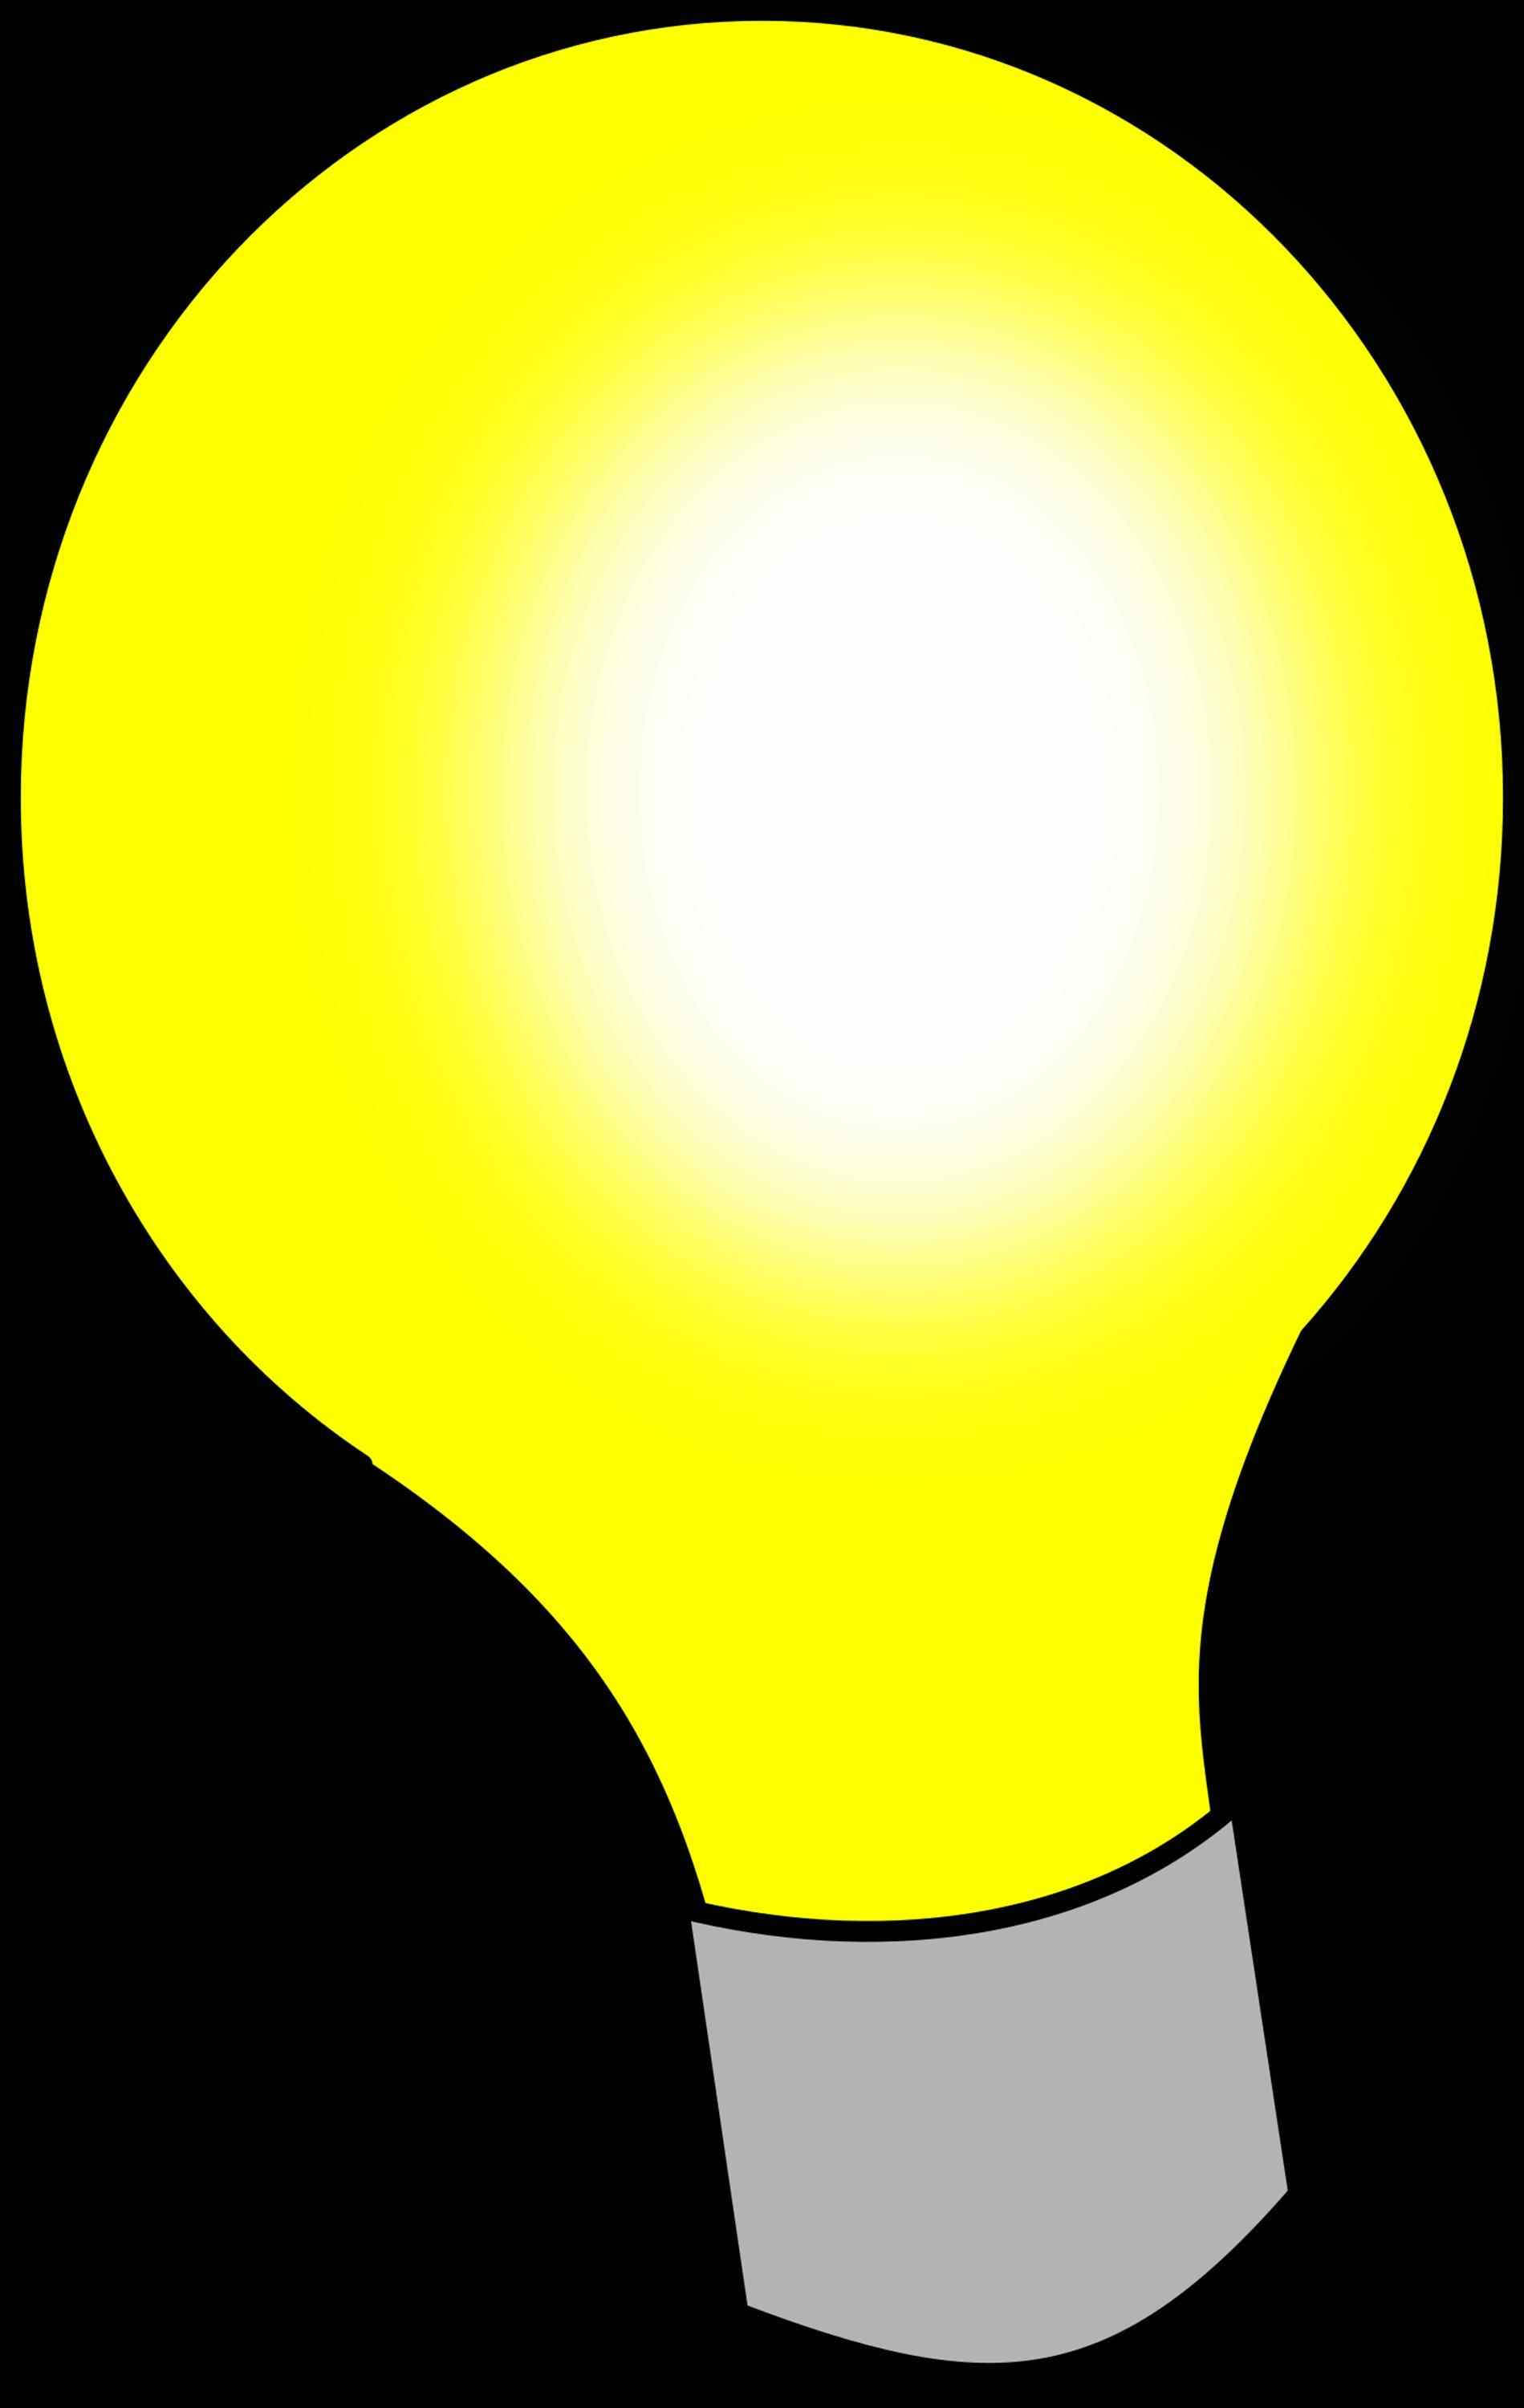 1899x3001 Cfl Light Bulb Clip Art. Simple The Led Lamp Icon Lamp And Bulb